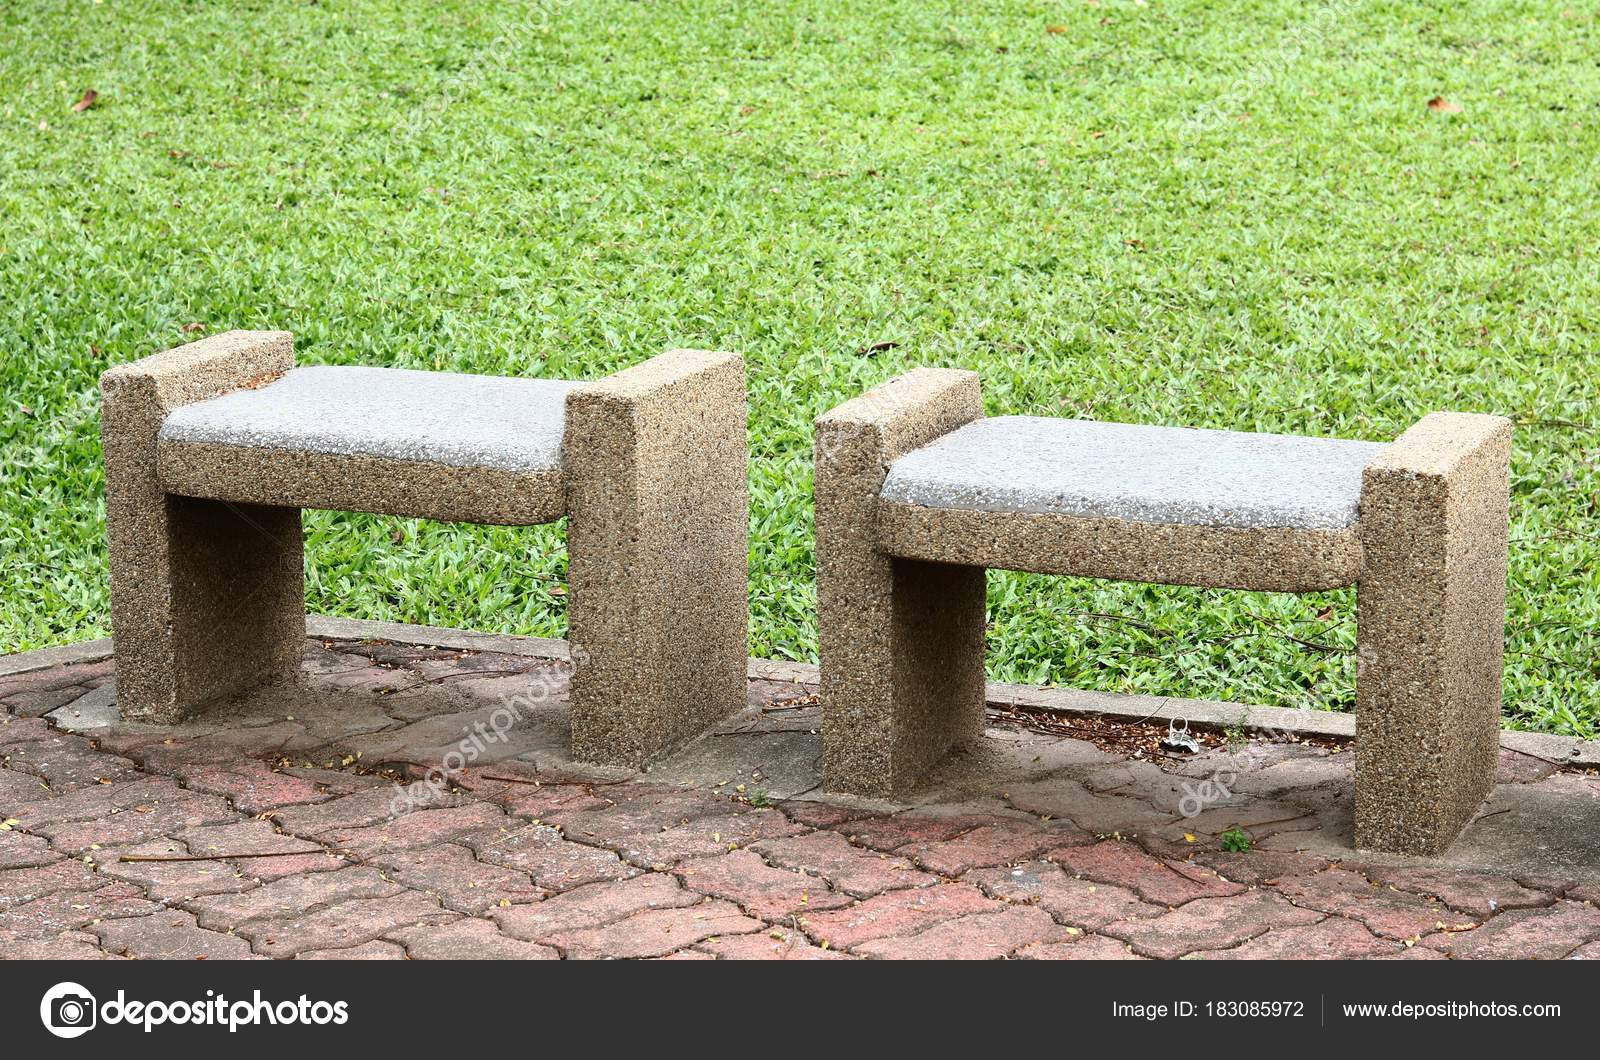 Groovy Stone Benches Seats In The Park Stock Photo C Gap 183085972 Bralicious Painted Fabric Chair Ideas Braliciousco